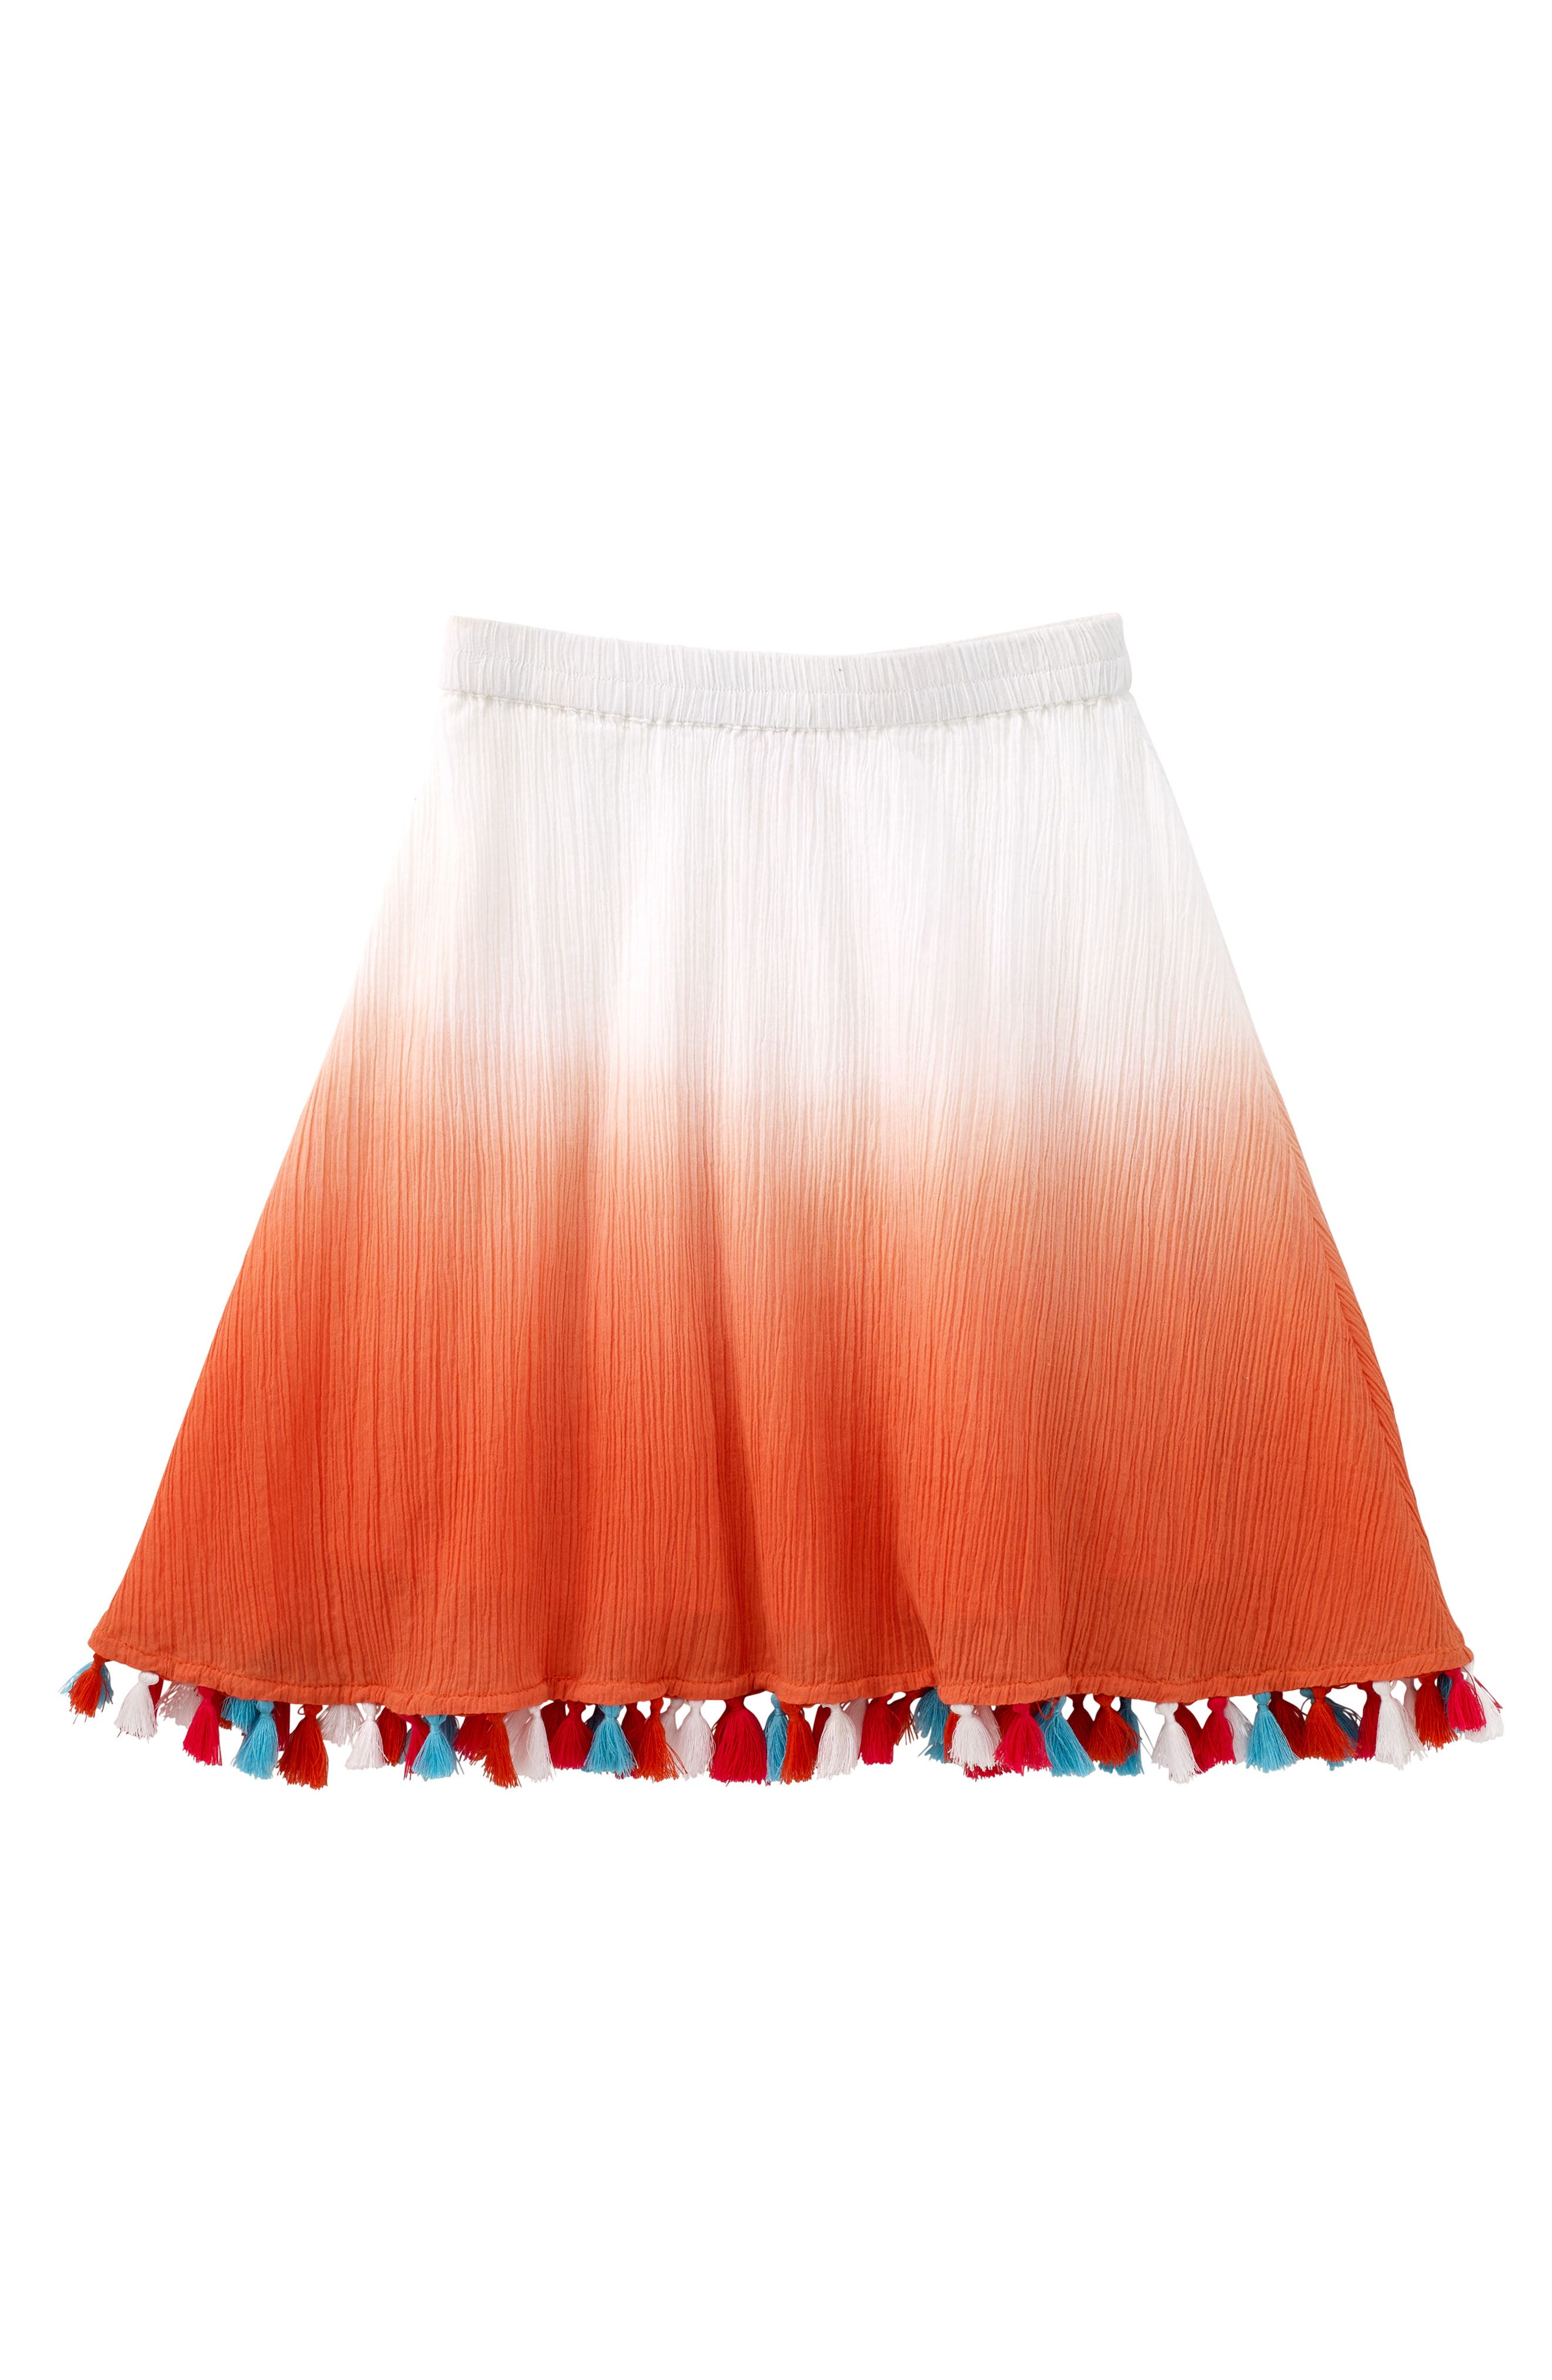 Dip Dye Tassel Skirt,                         Main,                         color, 600